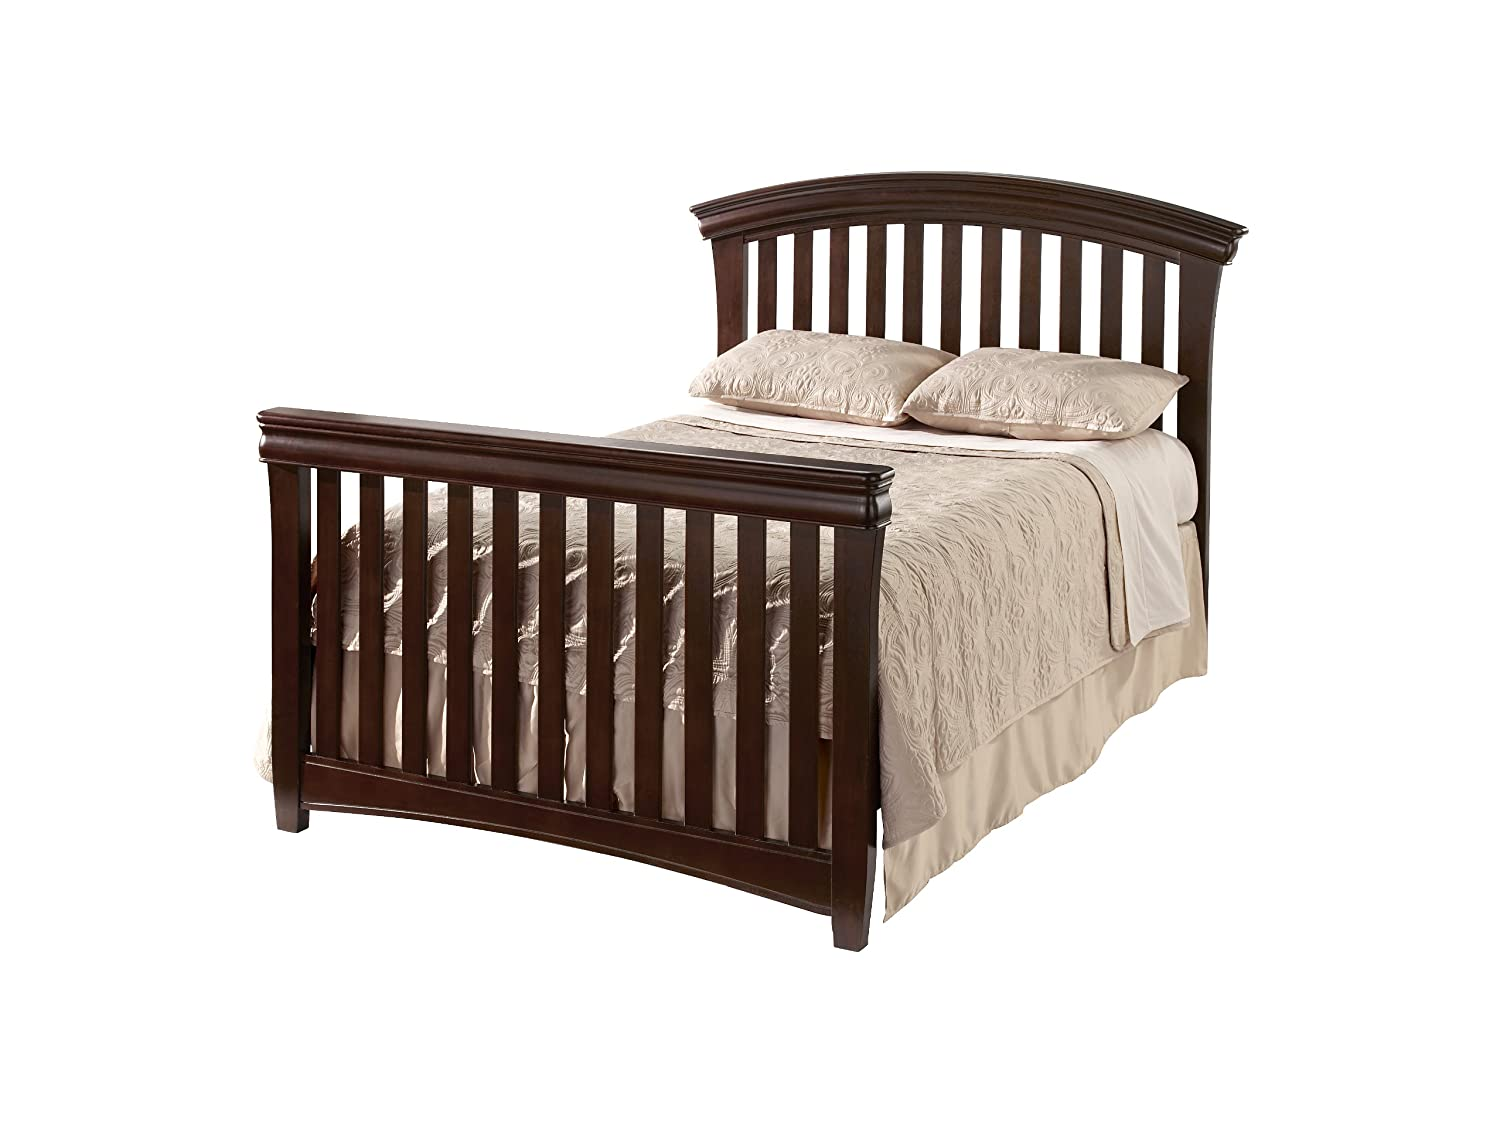 Toddler bed rails for convertible cribs - Amazon Com Westwood Design Stratton Bed Rails Chocolate Mist Nursery Bed Rails Baby